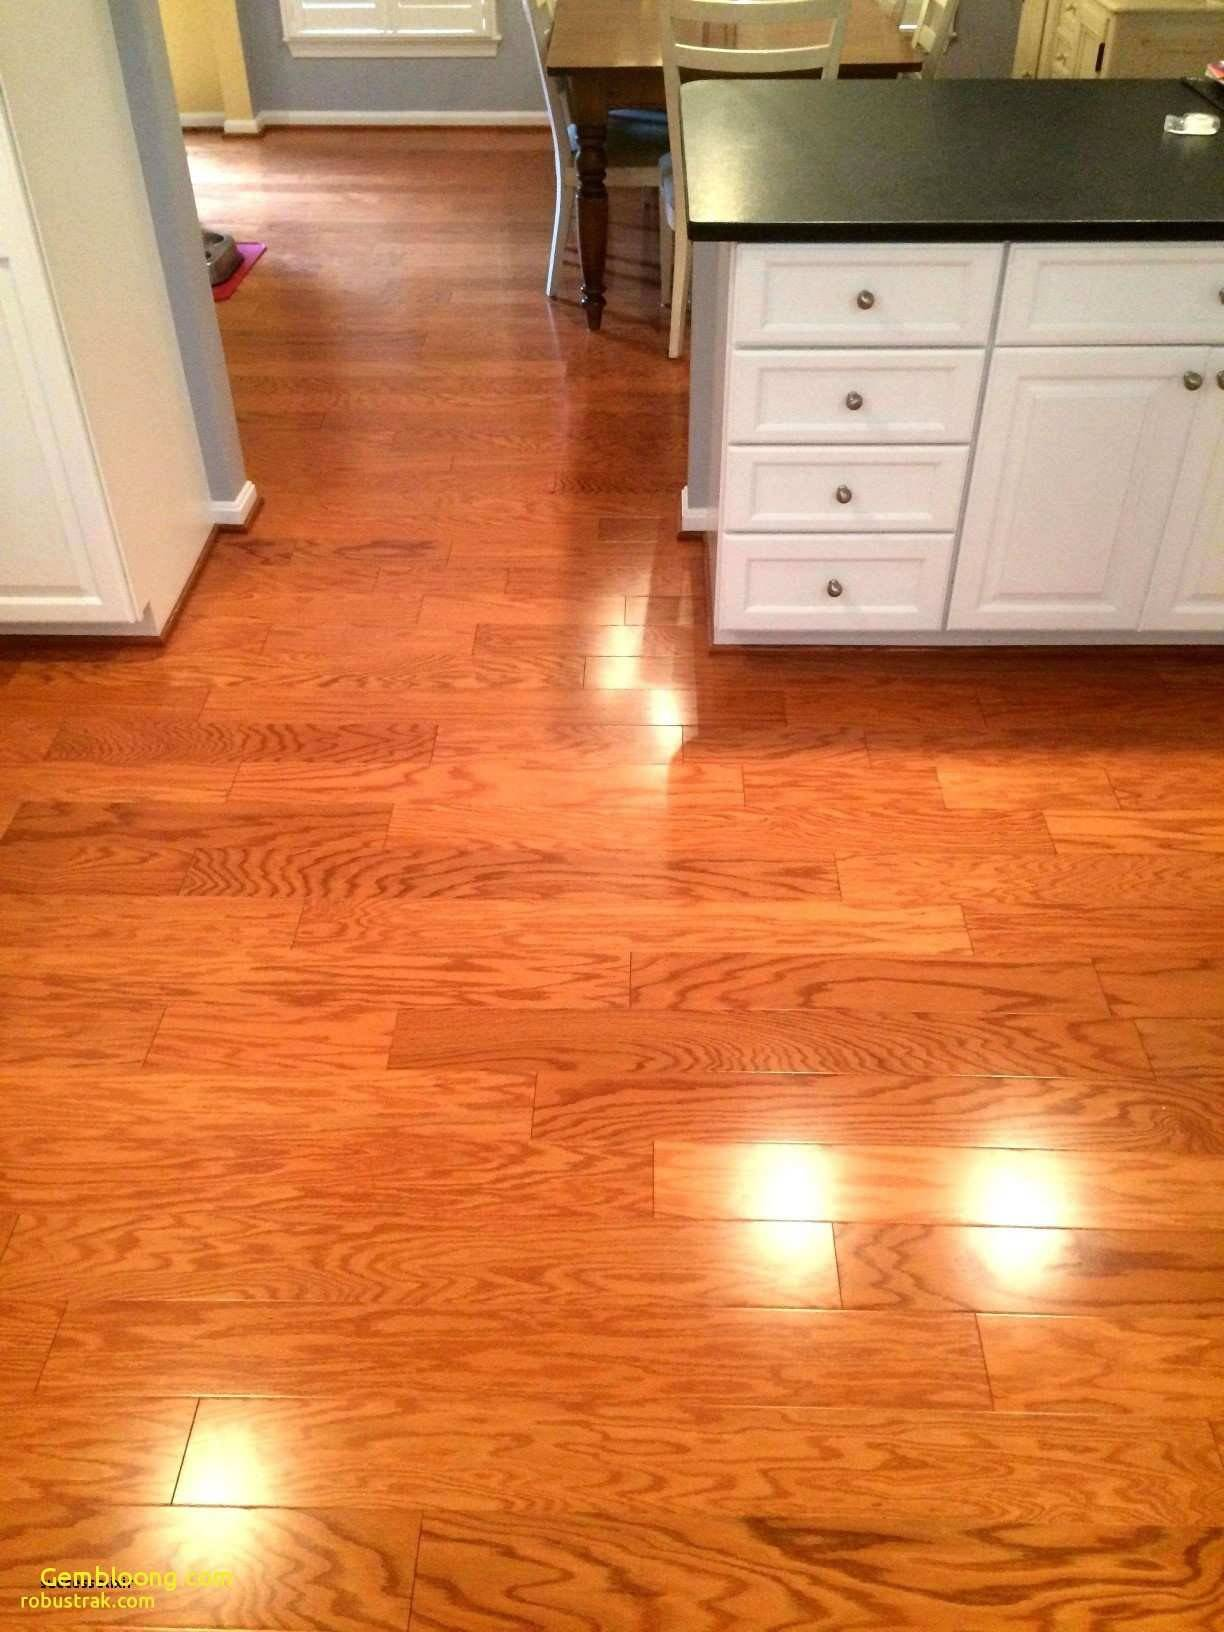 can i put hardwood floor in basement of wood for floors facesinnature throughout hardwood floors in the kitchen fresh where to hardwood flooring inspirational 0d grace place barnegat